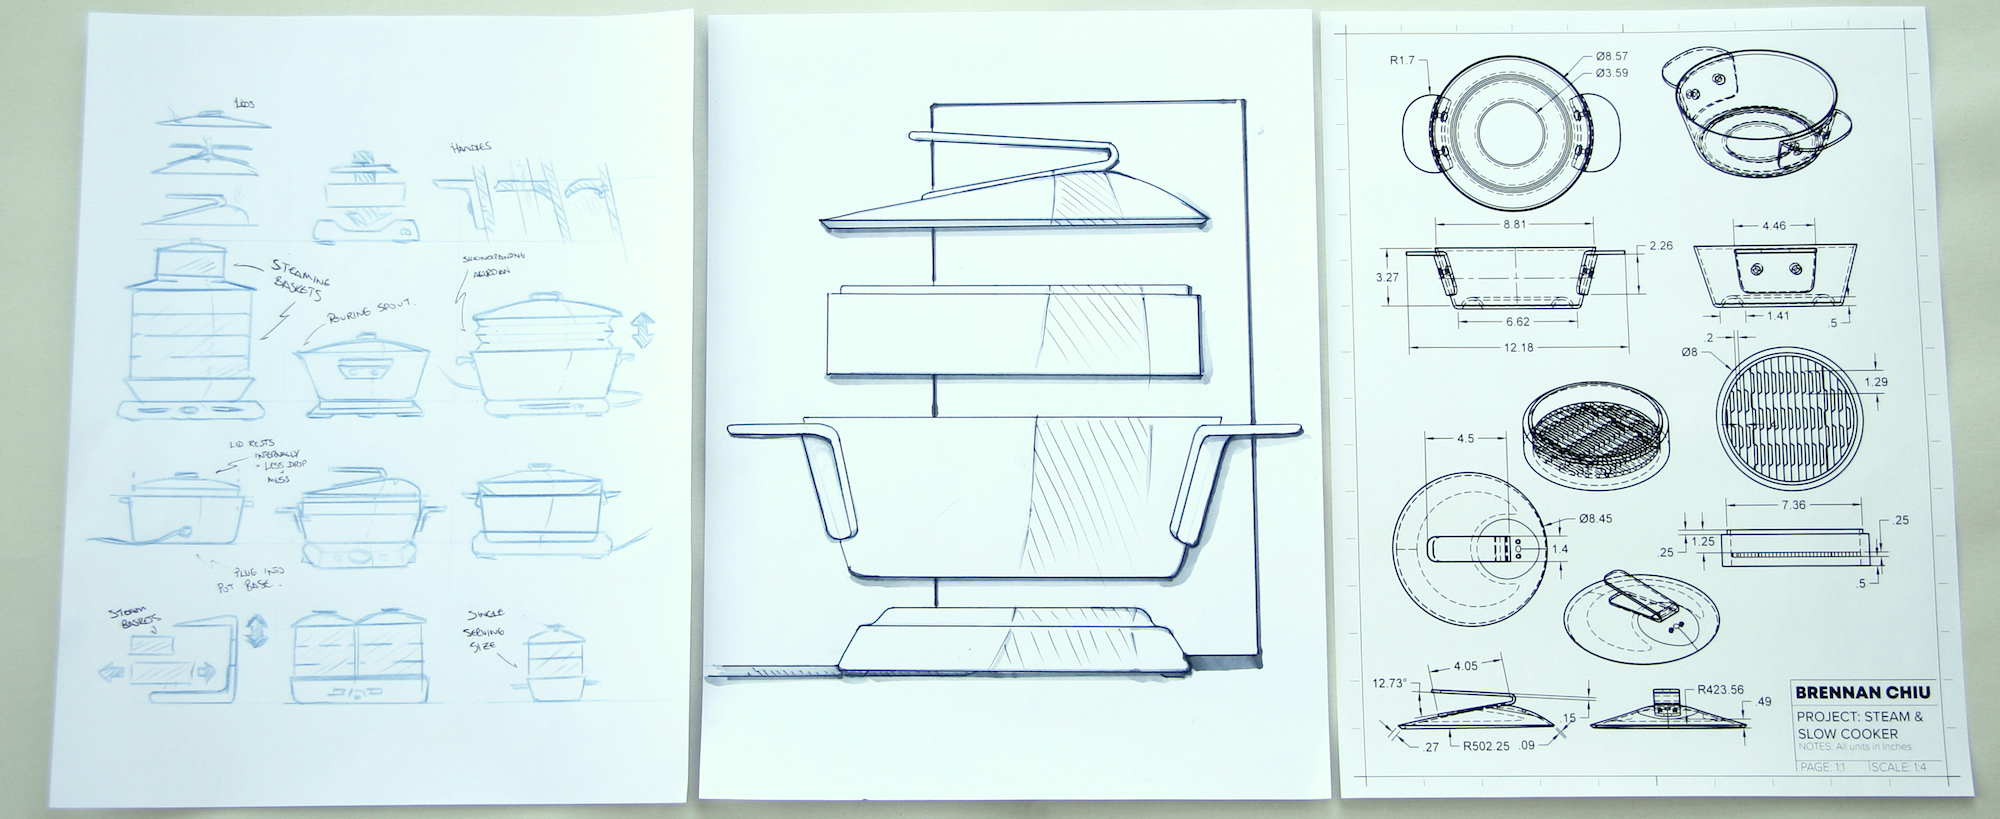 Brennan-Chiu_Industrial-Design_Product-Design_Appliance-Project_Sketches.jpg